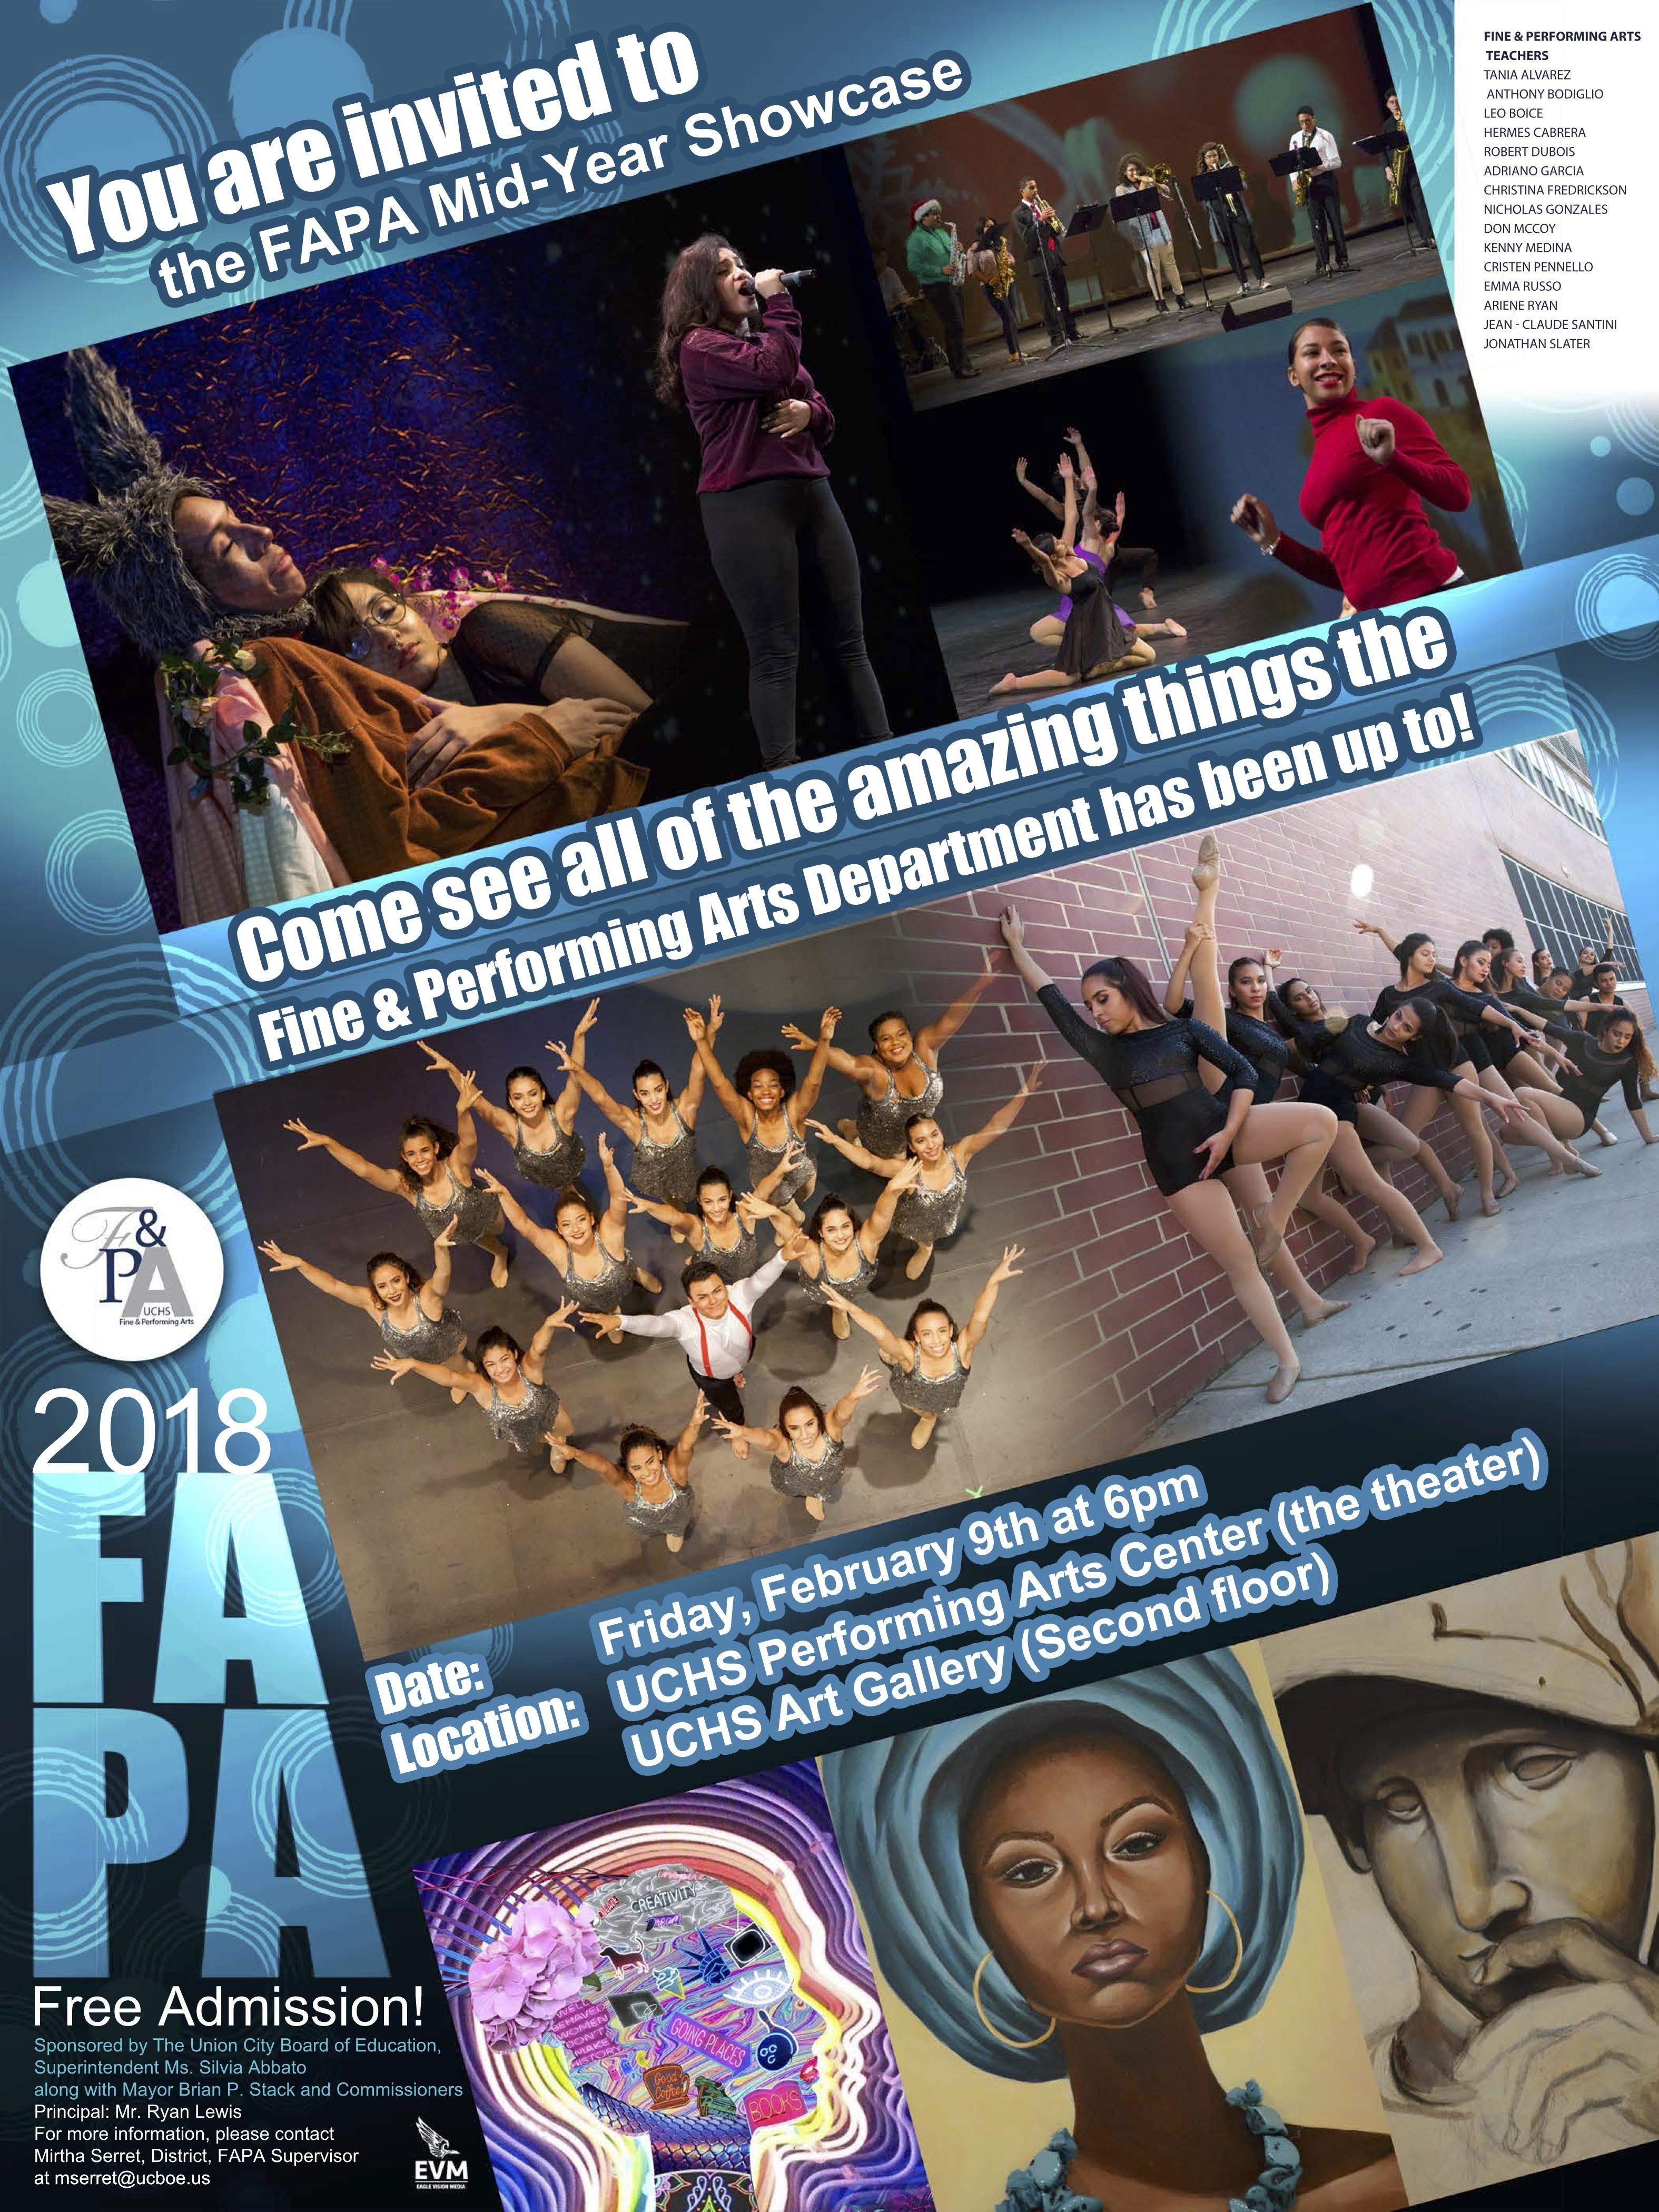 Fapa MidYear Showcase